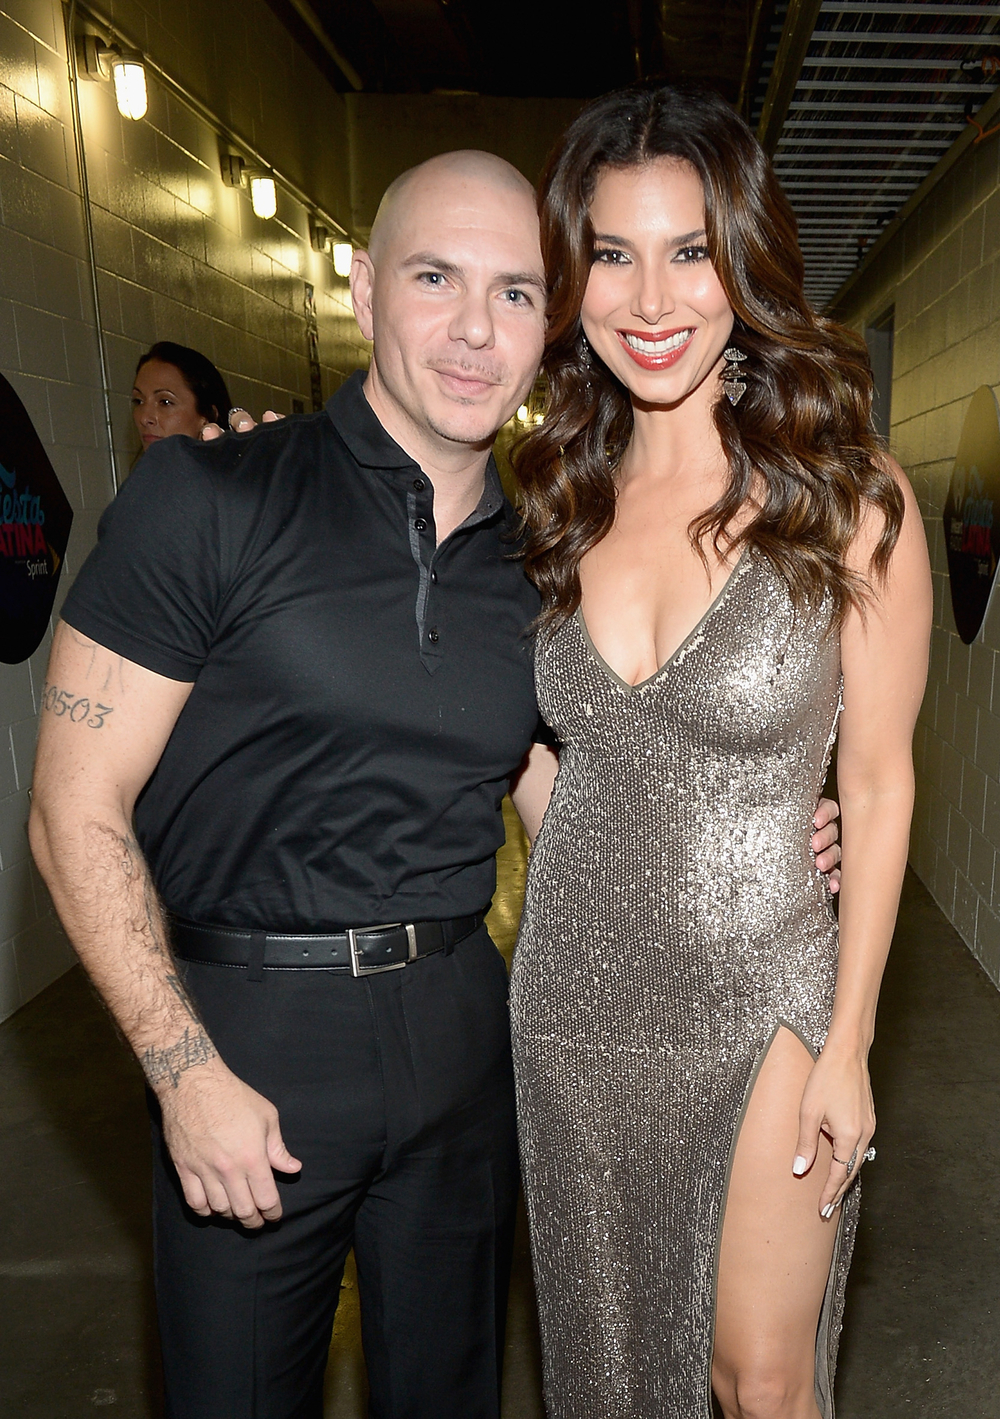 MIAMI, FL - NOVEMBER 07: Pitbull and Roselyn Sanchez attend iHeartRadio Fiesta Latina presented by Sprint at American Airlines Arena on November 7, 2015 in Miami, Florida.  (Photo by Gustavo Caballero/Getty Images for iHeartMedia) *** Local Caption *** Pitbull, Roselyn Sanchez